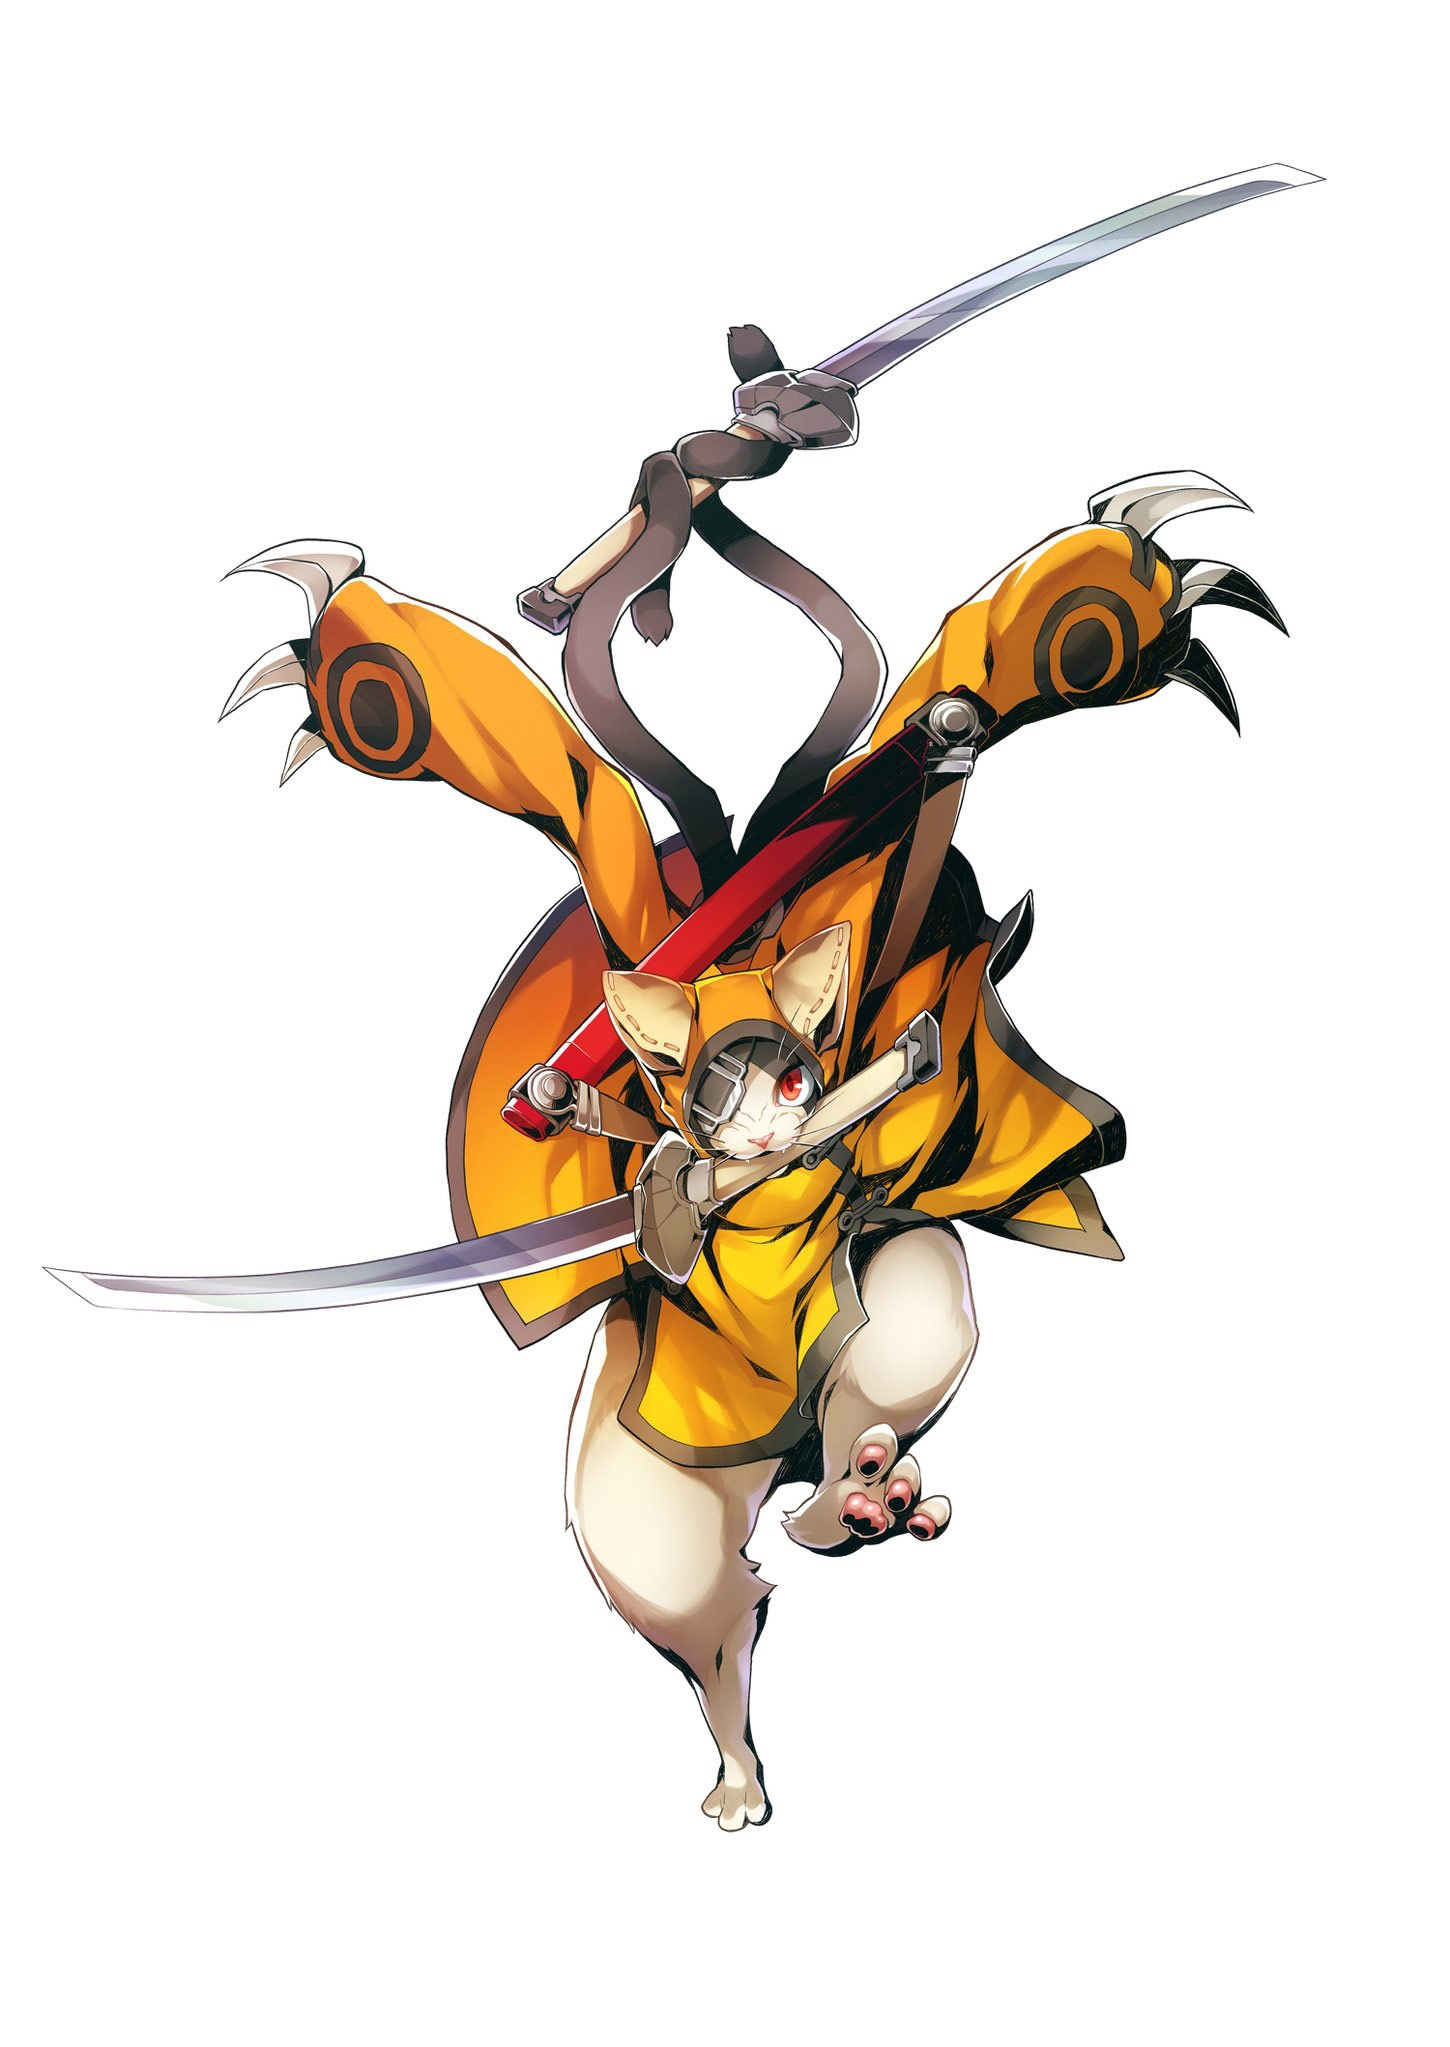 Jubei in BlazBlue: Central Fiction 1 out of 6 image gallery